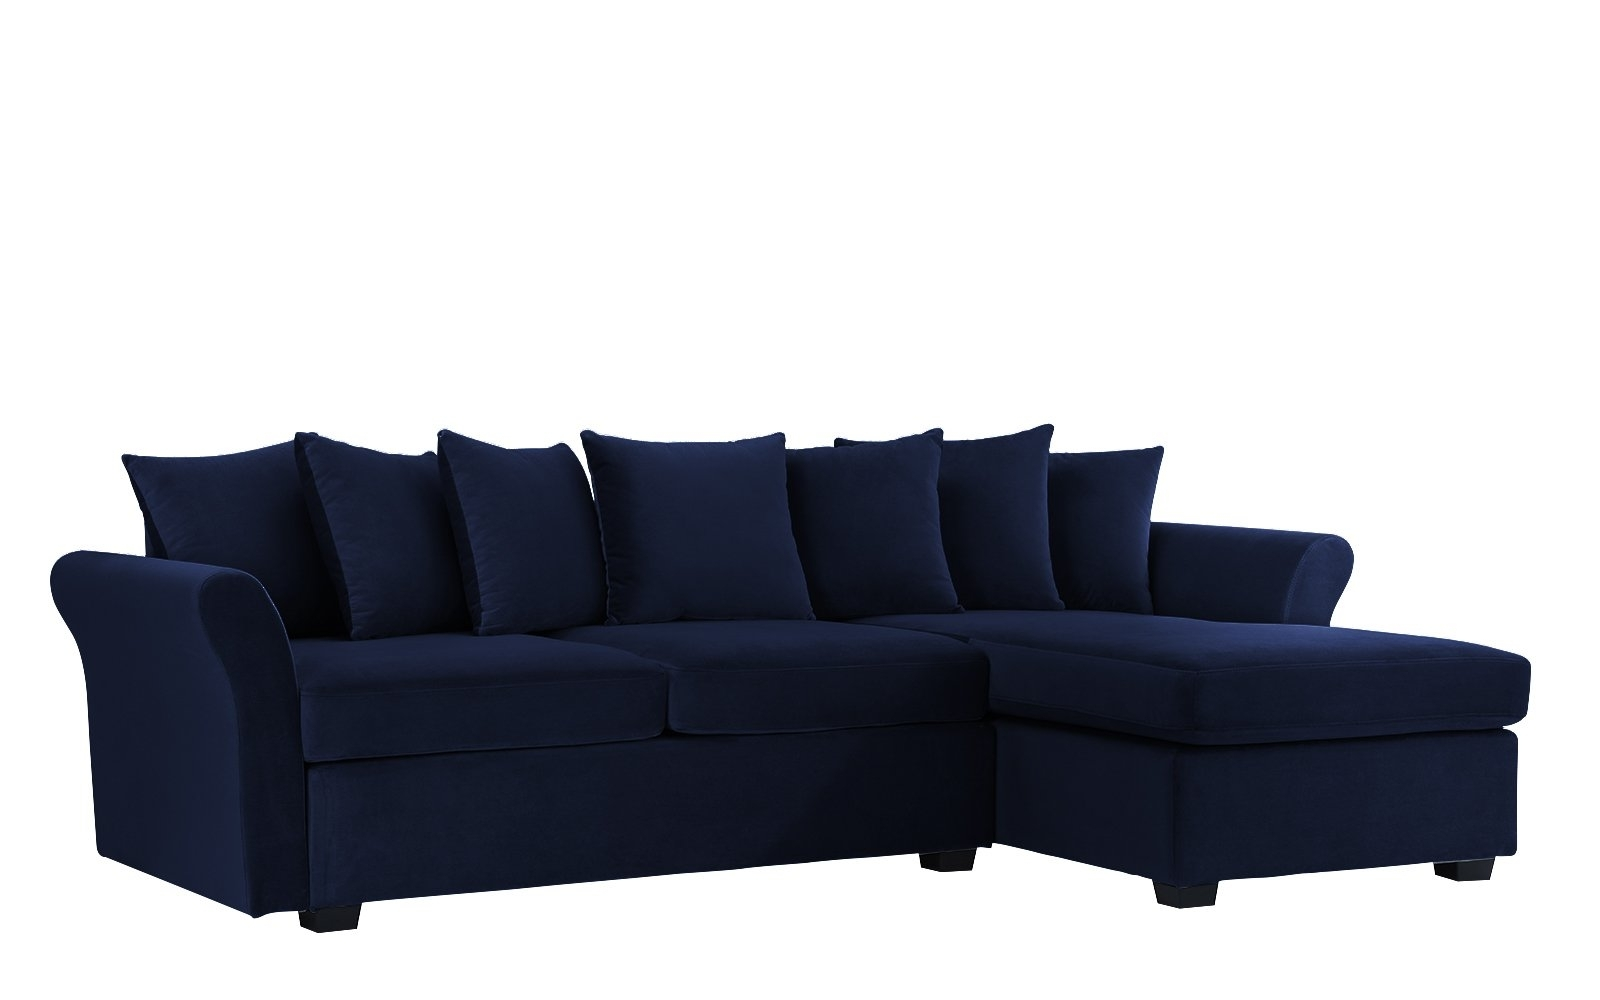 Popular Vt Sectional Sofas Throughout Wide Sofa – Home And Textiles (View 10 of 21)